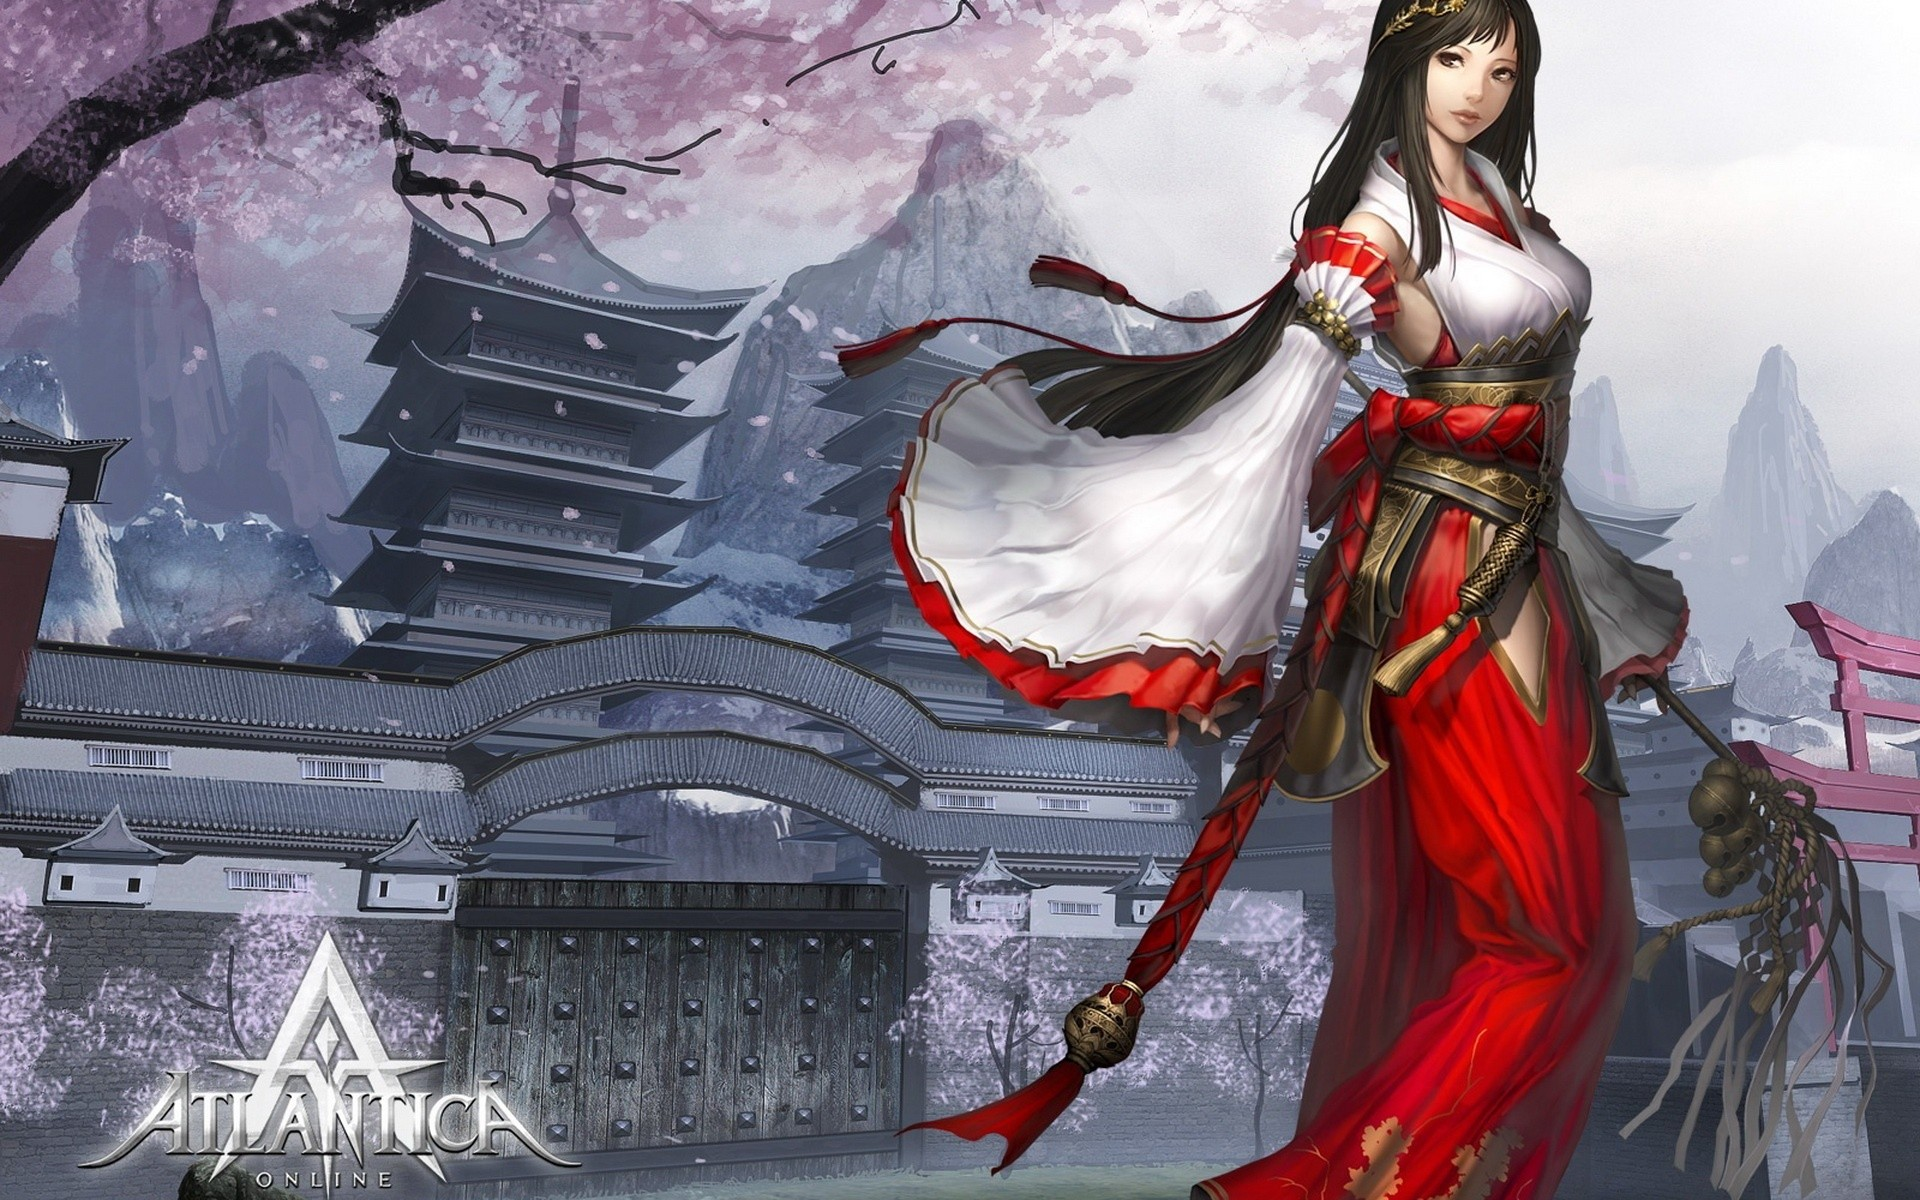 video games mountains cherry blossoms text long hair buildings Miko pagodas MMORPG priestess bells torii flower petals staff Japanese clothes detached sleeves Atlantica Online black hair